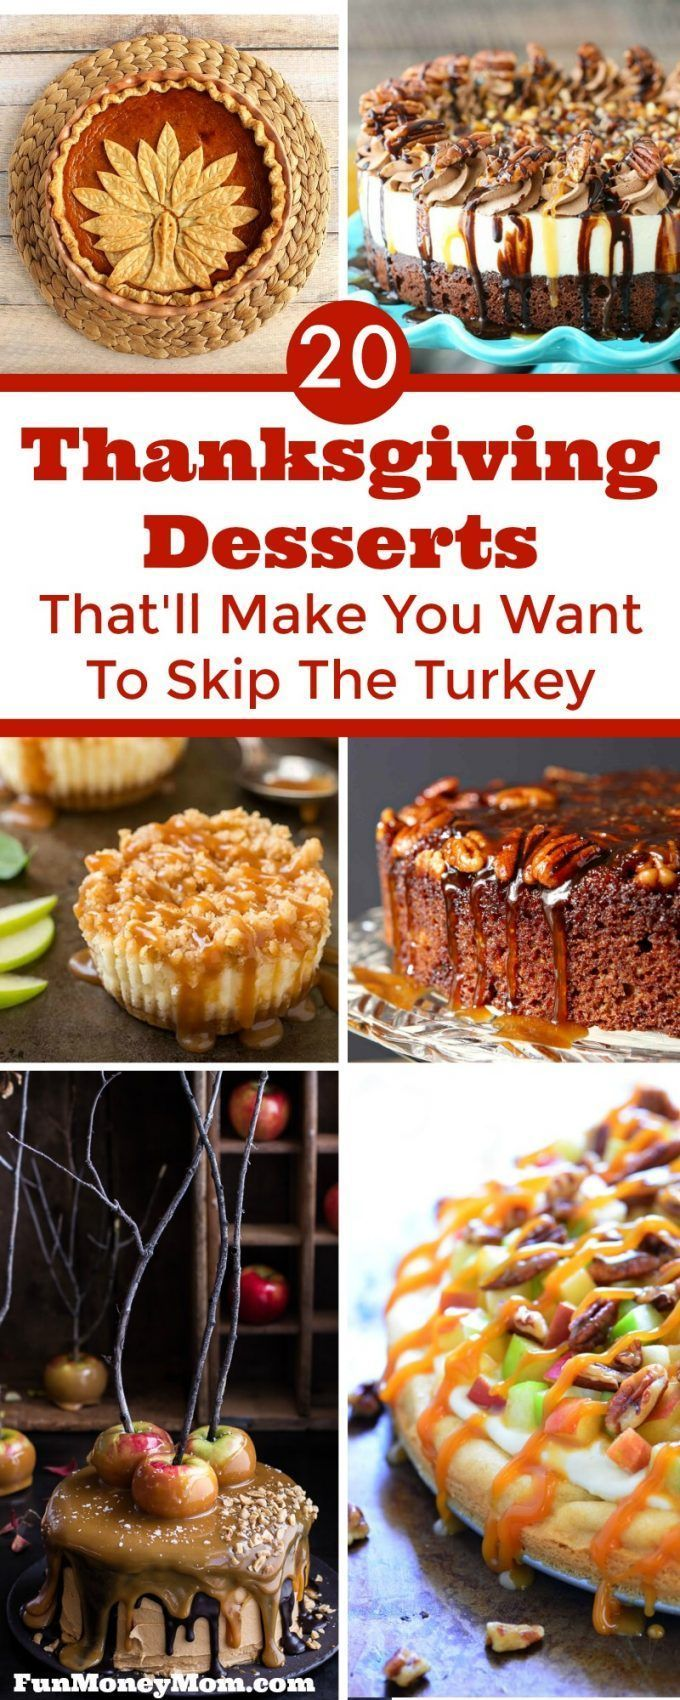 Thanksgiving Desserts That'll Make You Want To Skip Turkey images